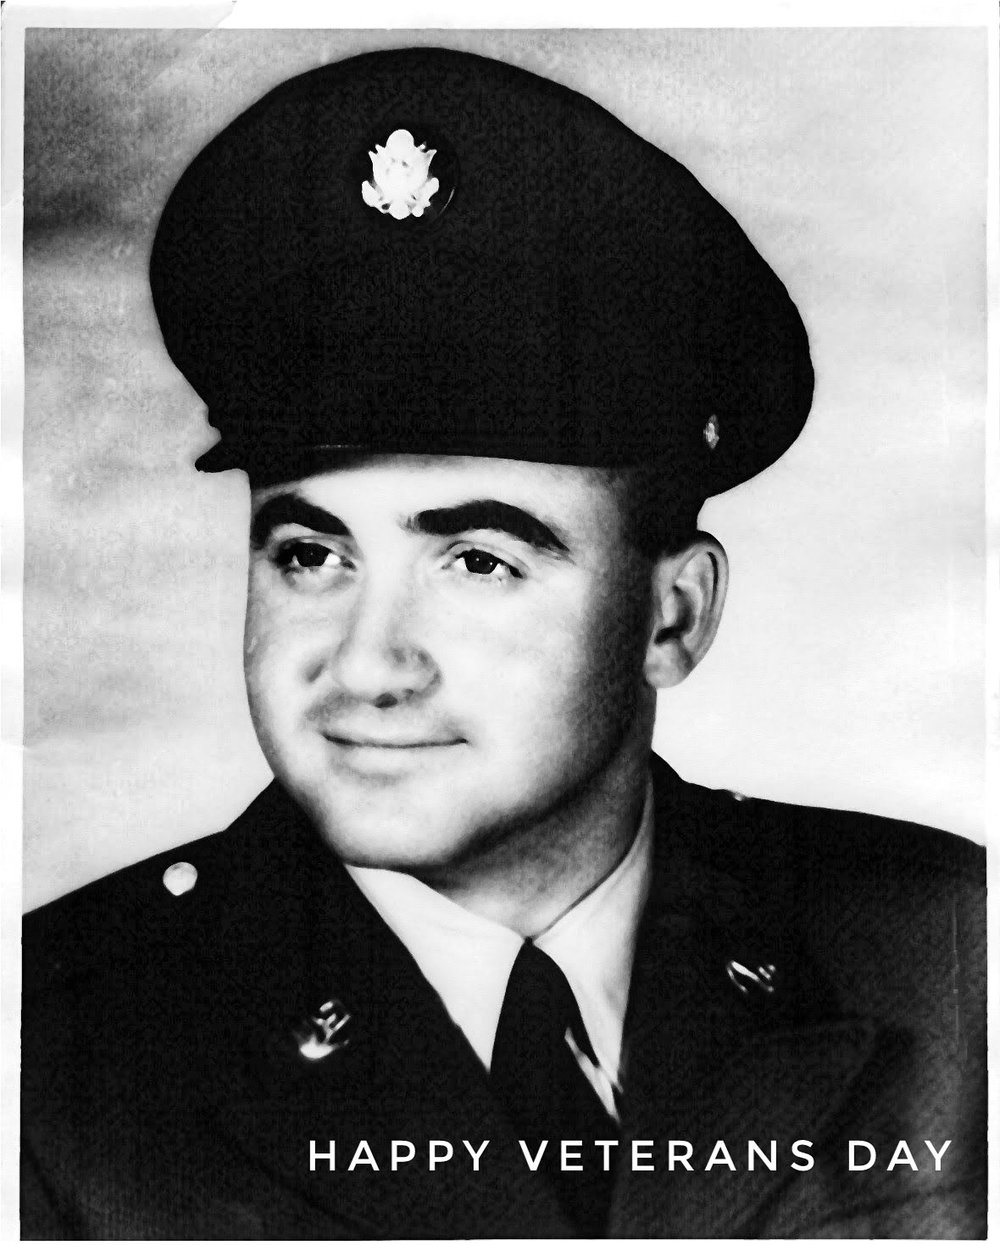 Luis Lopez Sr. (pictured above) served in US Army during the height of the Cold War in Wildflecken, Germany. During his tour of duty, he serviced and repaired Army vehicles, keeping our troops going. This experience gave him the skills and satisfaction that lead him to continue servicing and fixing vehicles for others after being honorably discharged.